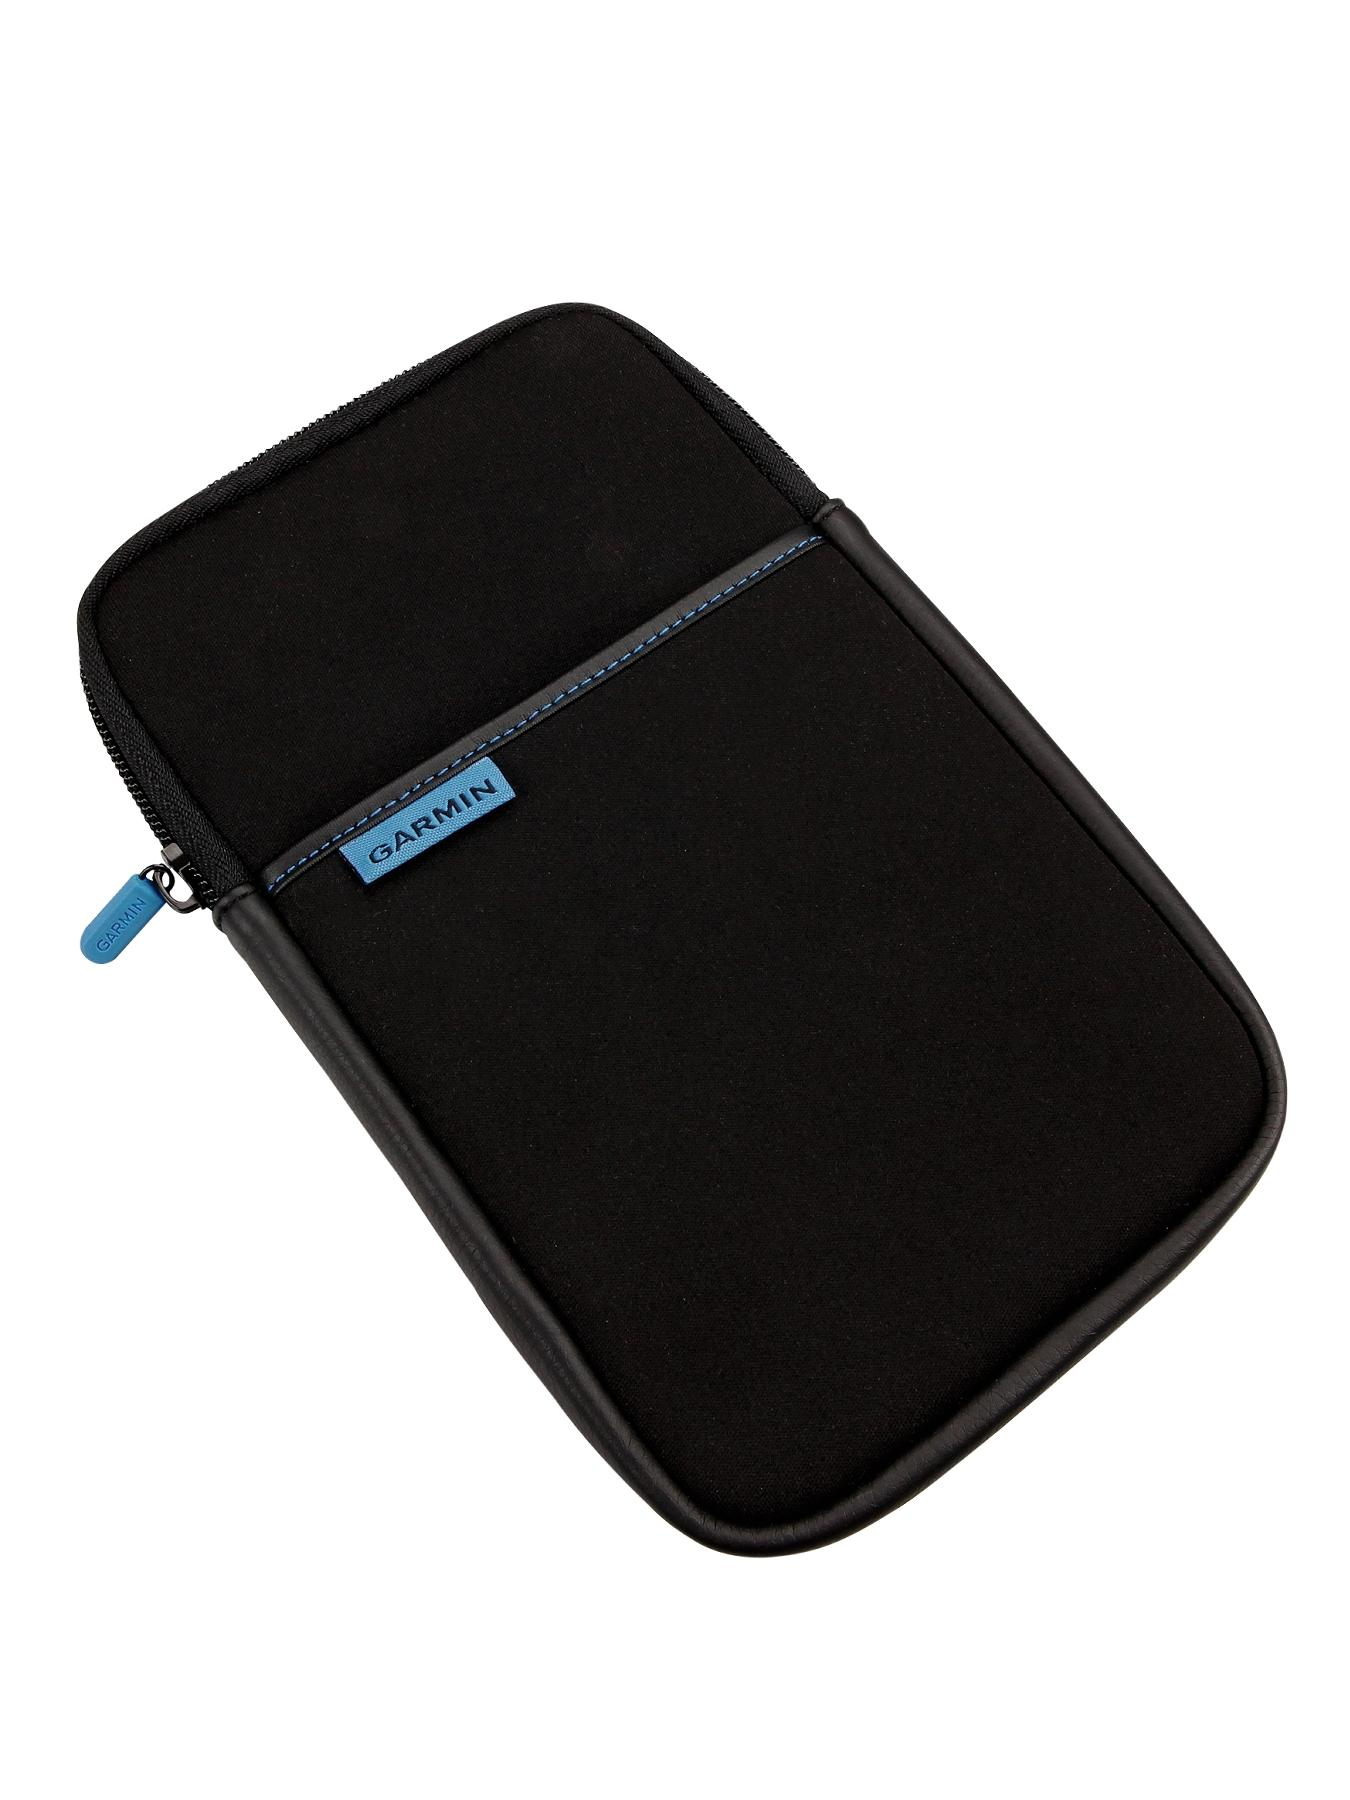 7 inch Universal Carry Case at Littlewoods